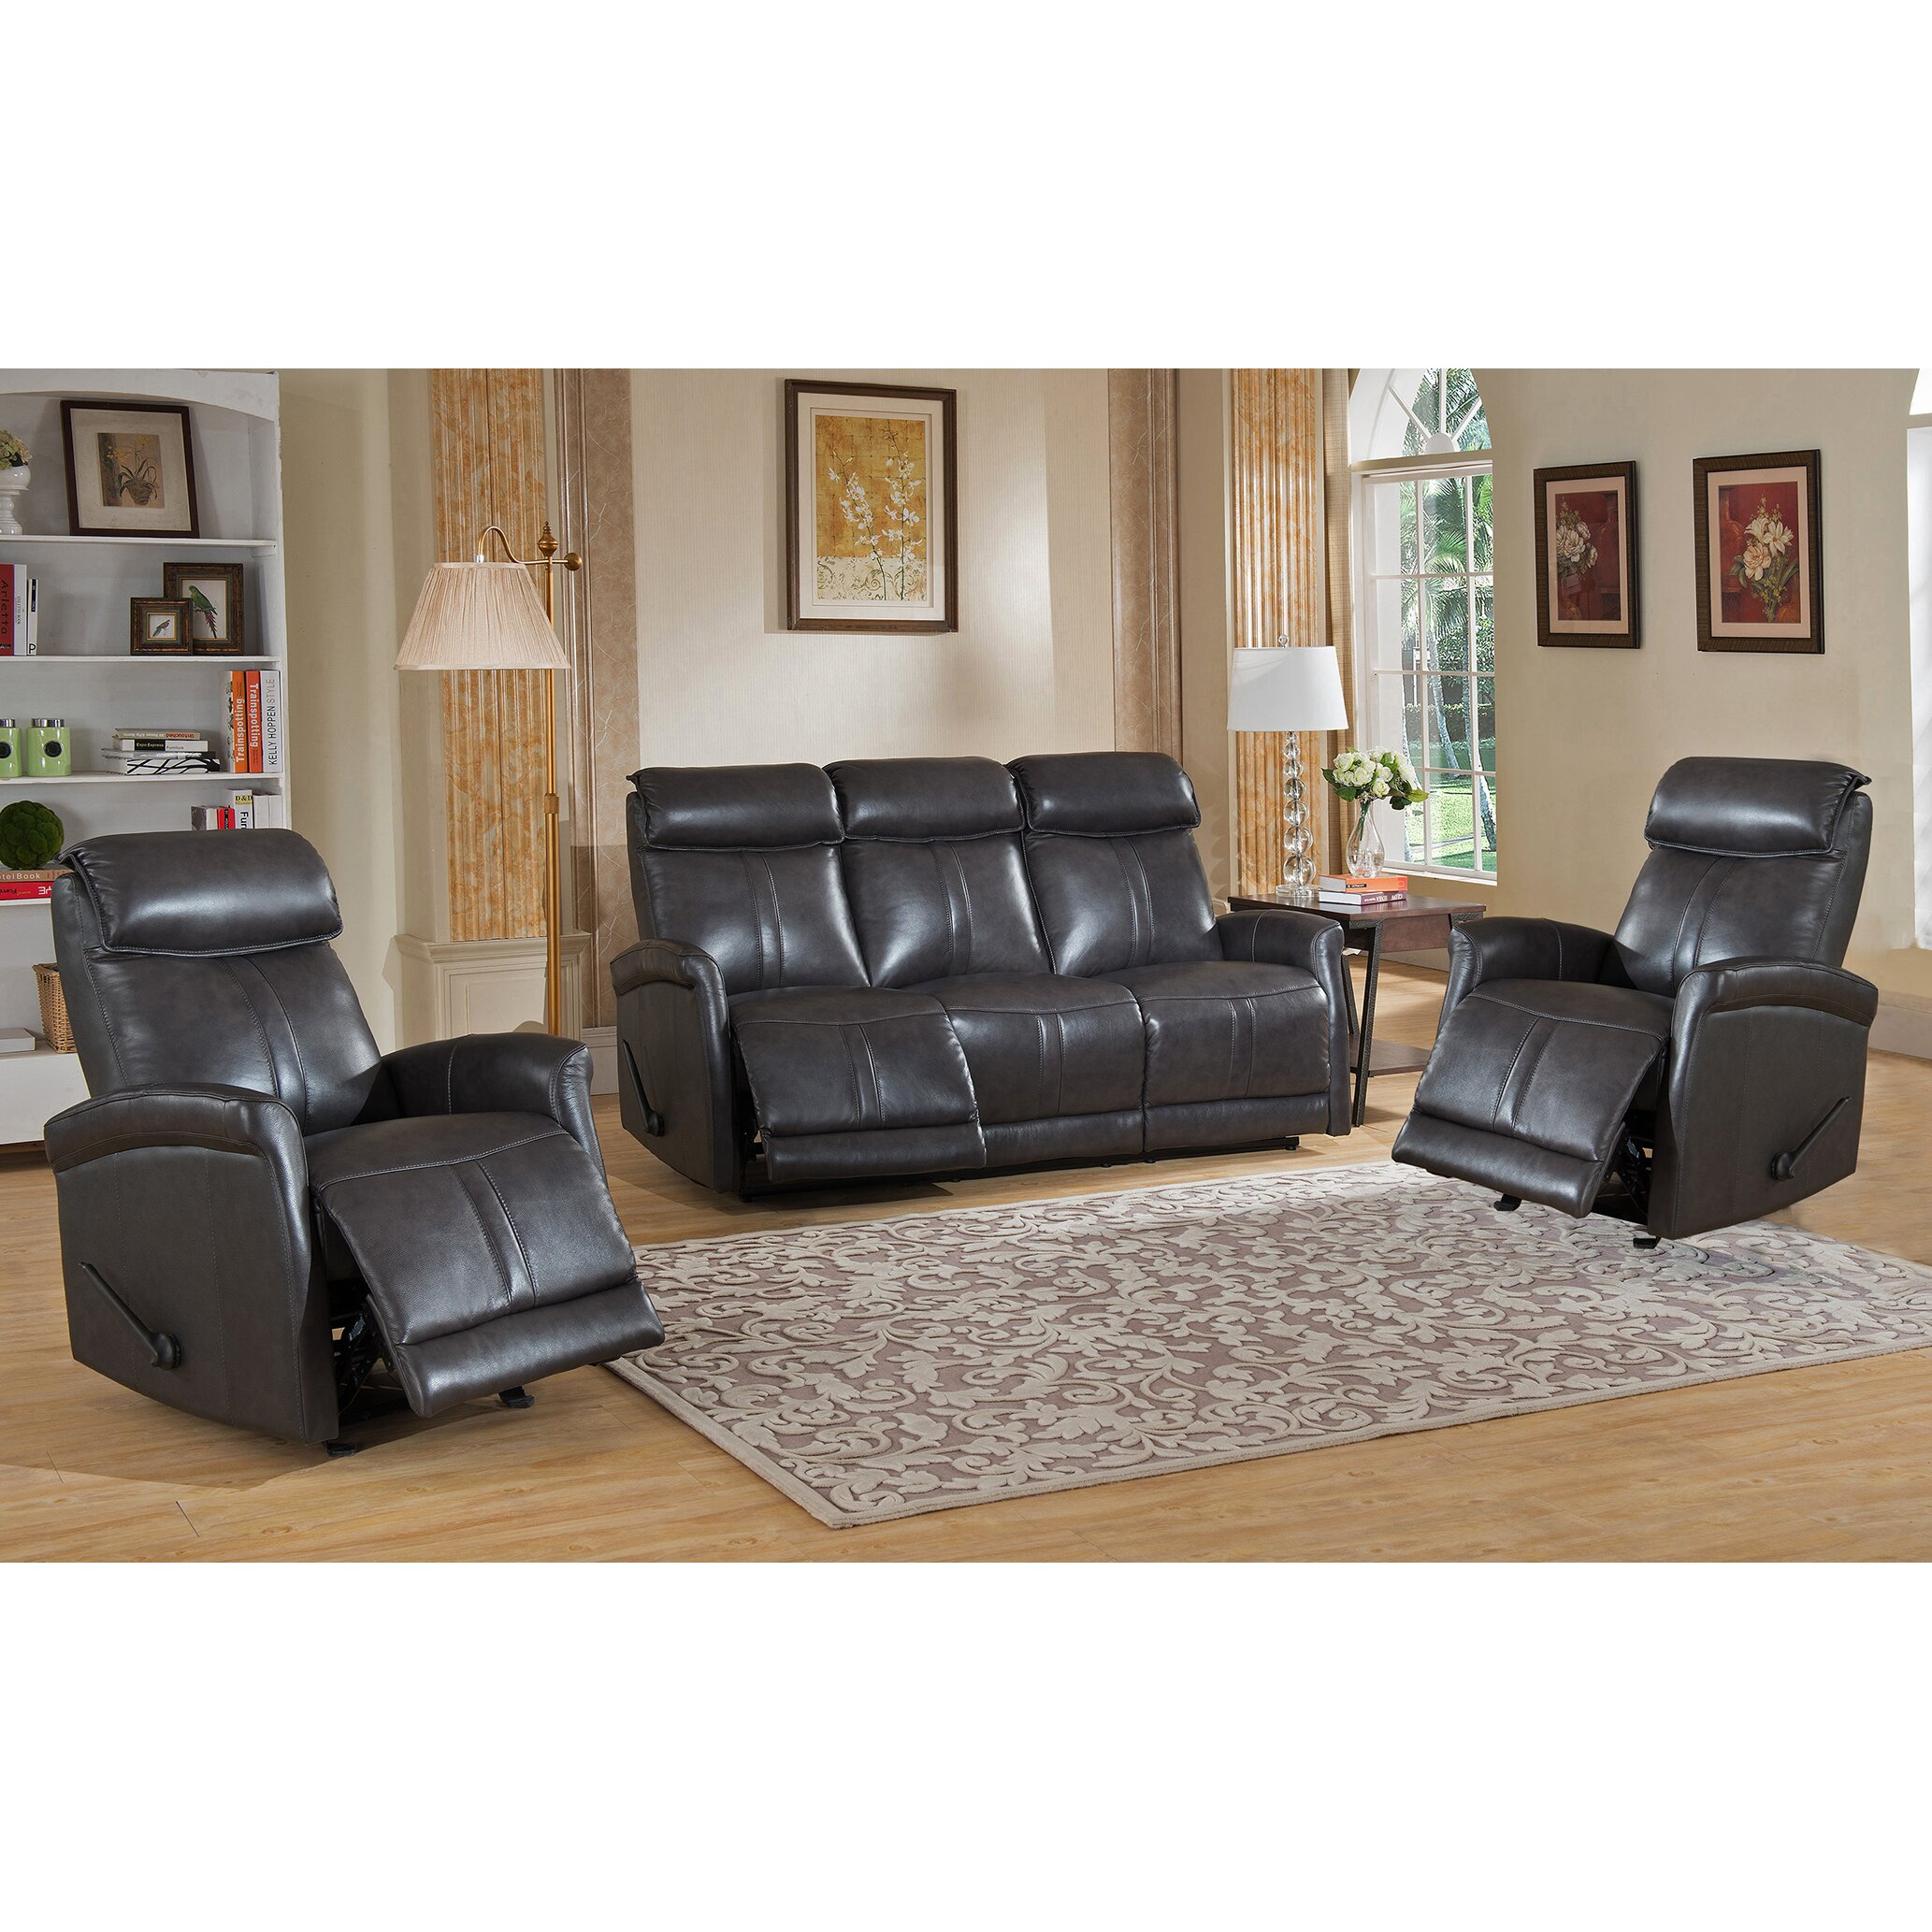 Three Piece Leather Living Room Set. Formal Living Room Office Ideas. Photos Of Christmas Decorated Living Rooms. Center Table Living Room. Diy Living Room Chair Plans. Choosing Paint Colors For Small Living Room. Living Room Designs With Chocolate Brown Sofa. Wholesale Living Room Furniture Sets. Living Room Bedroom Ideas